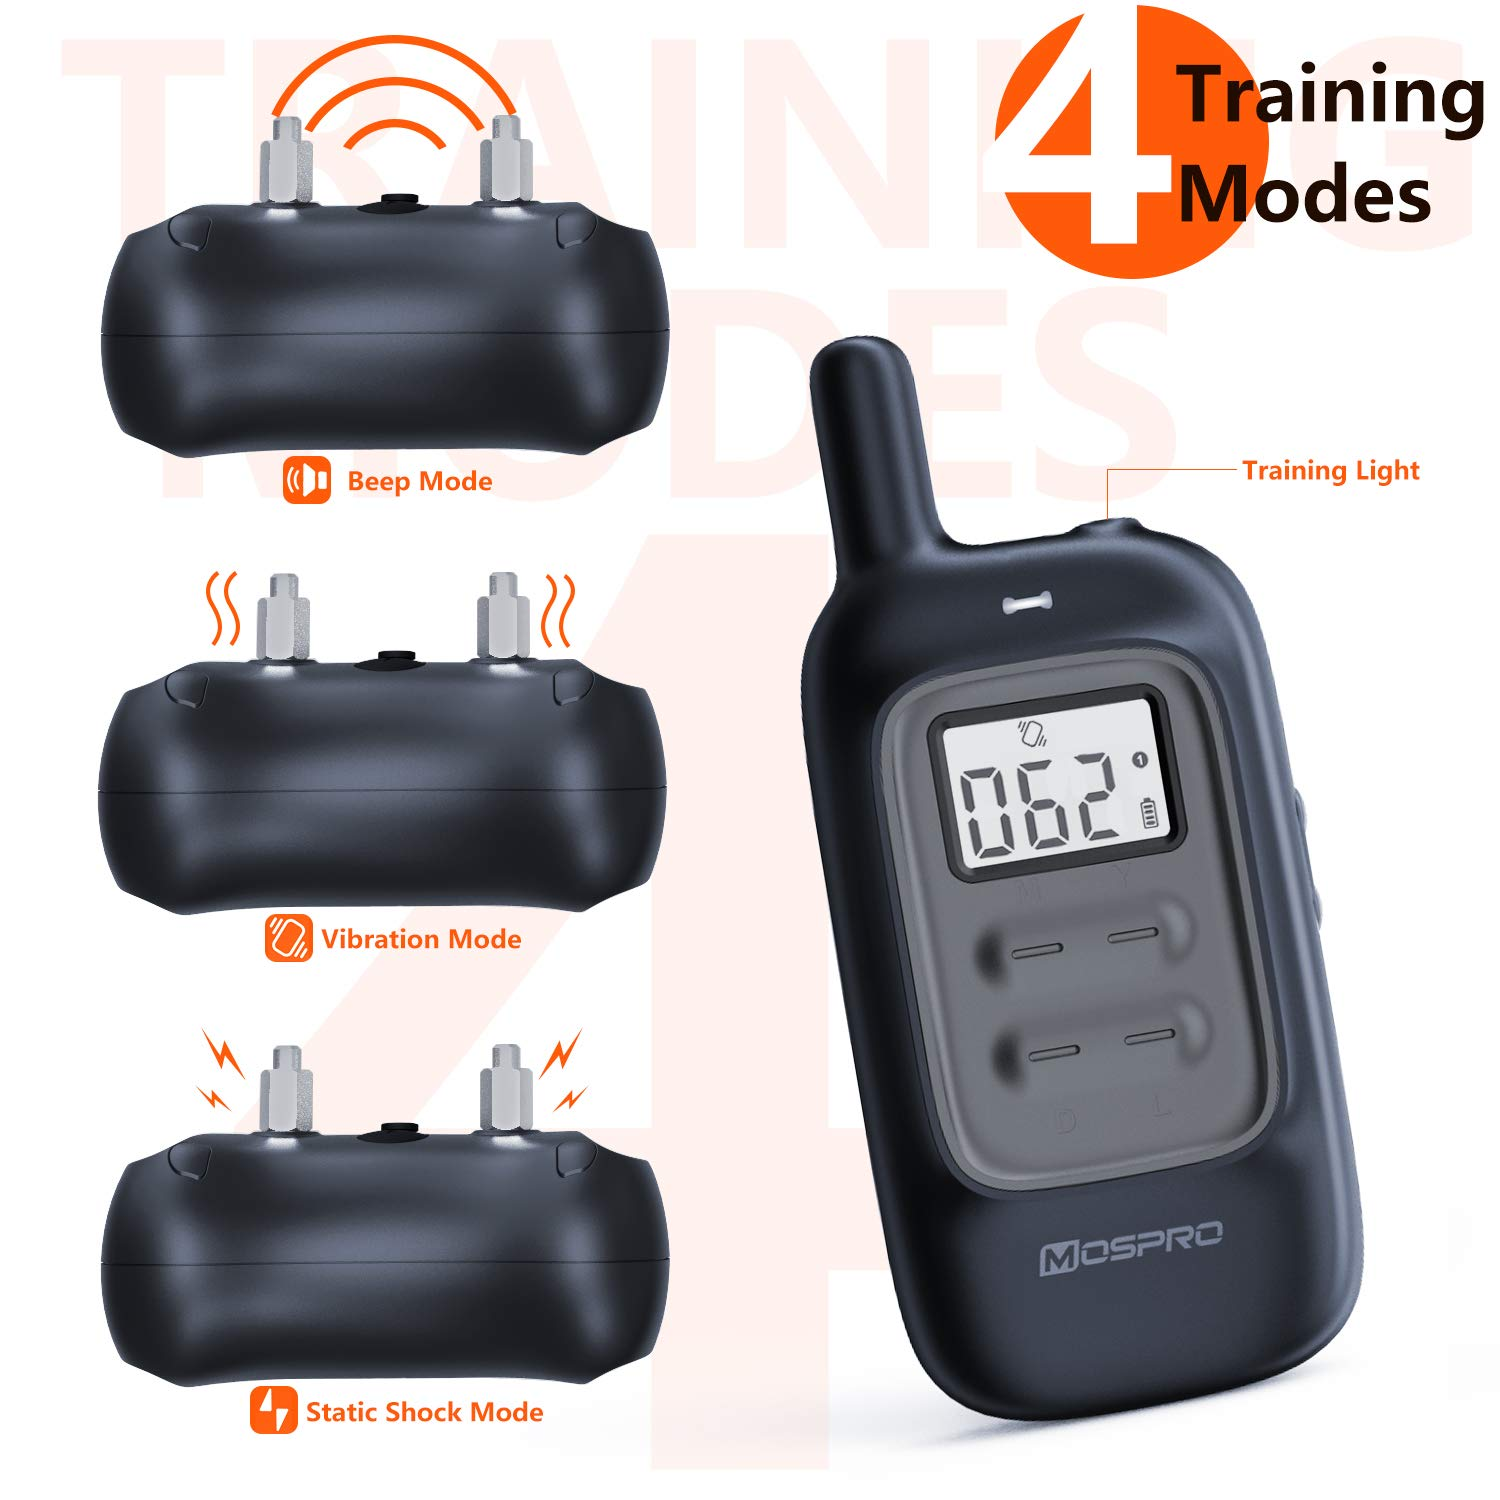 Shock Collar for Dogs - Dog Training Collar with Remote 1000Ft Rechargeable Rainproof Anti Bark E Collar,Beep Vibration Shock for Small Medium Large Dogs (2018 New) by MOSPRO (Image #3)